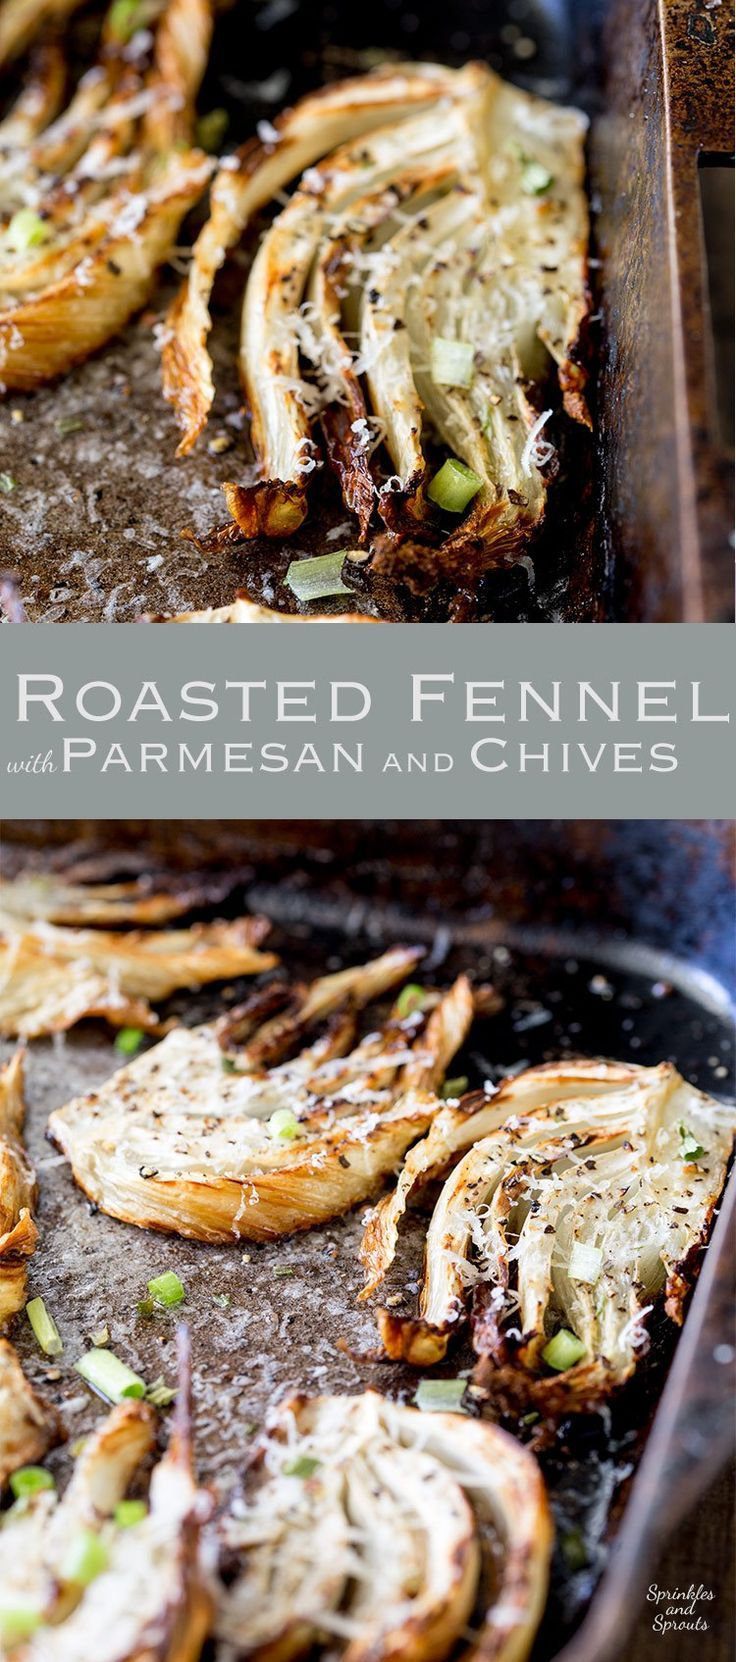 This roasted fennel dish is sweet and mellow and the perfect side for any occasion. It is simple to make and takes no effort as it roasts happily in the oven. Another great side recipe from Sprinkles and Sprouts